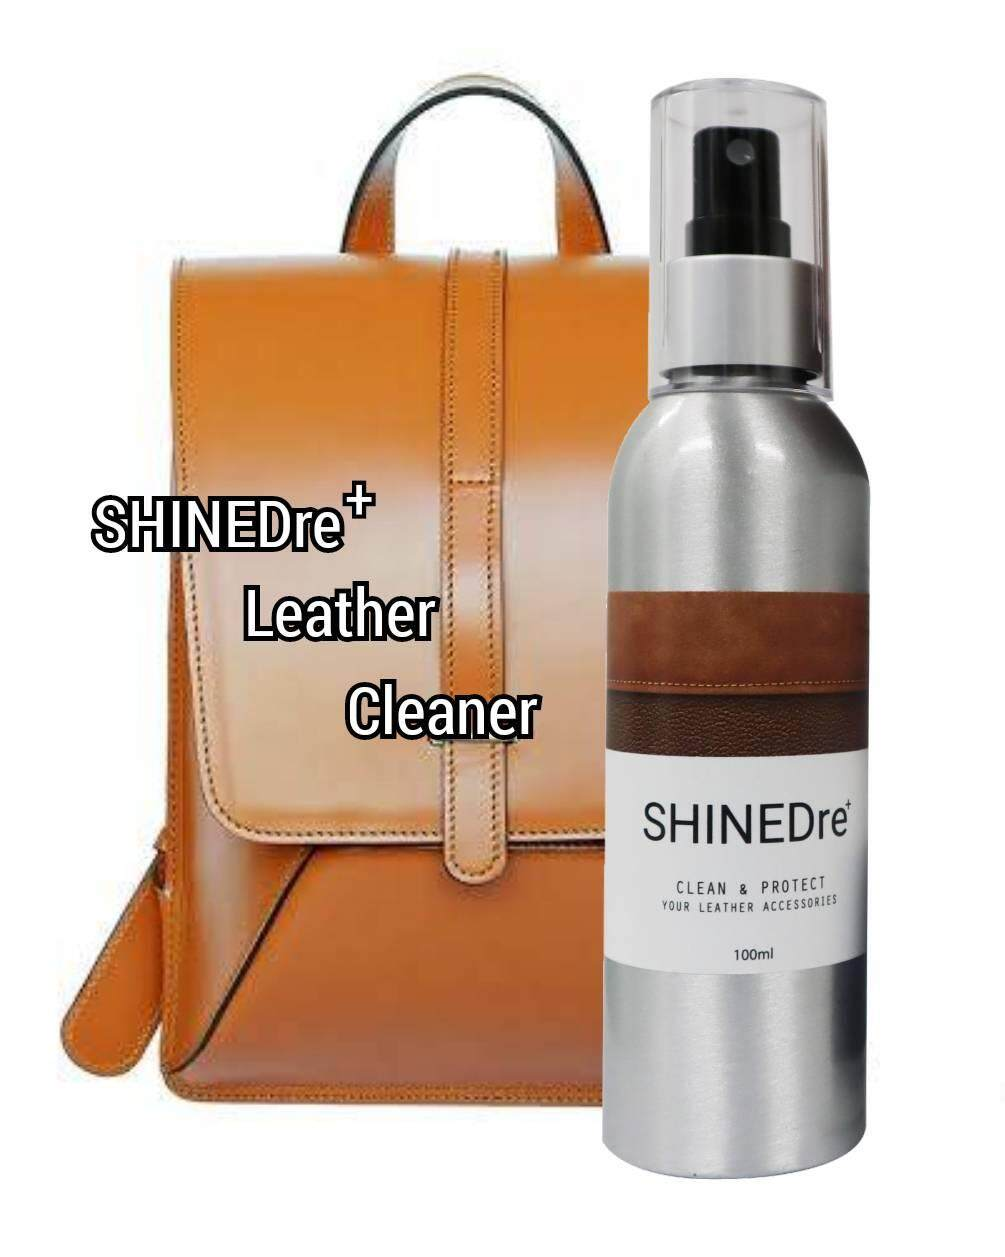 Shinedre Leather Cleaner By S.t.i Shop.